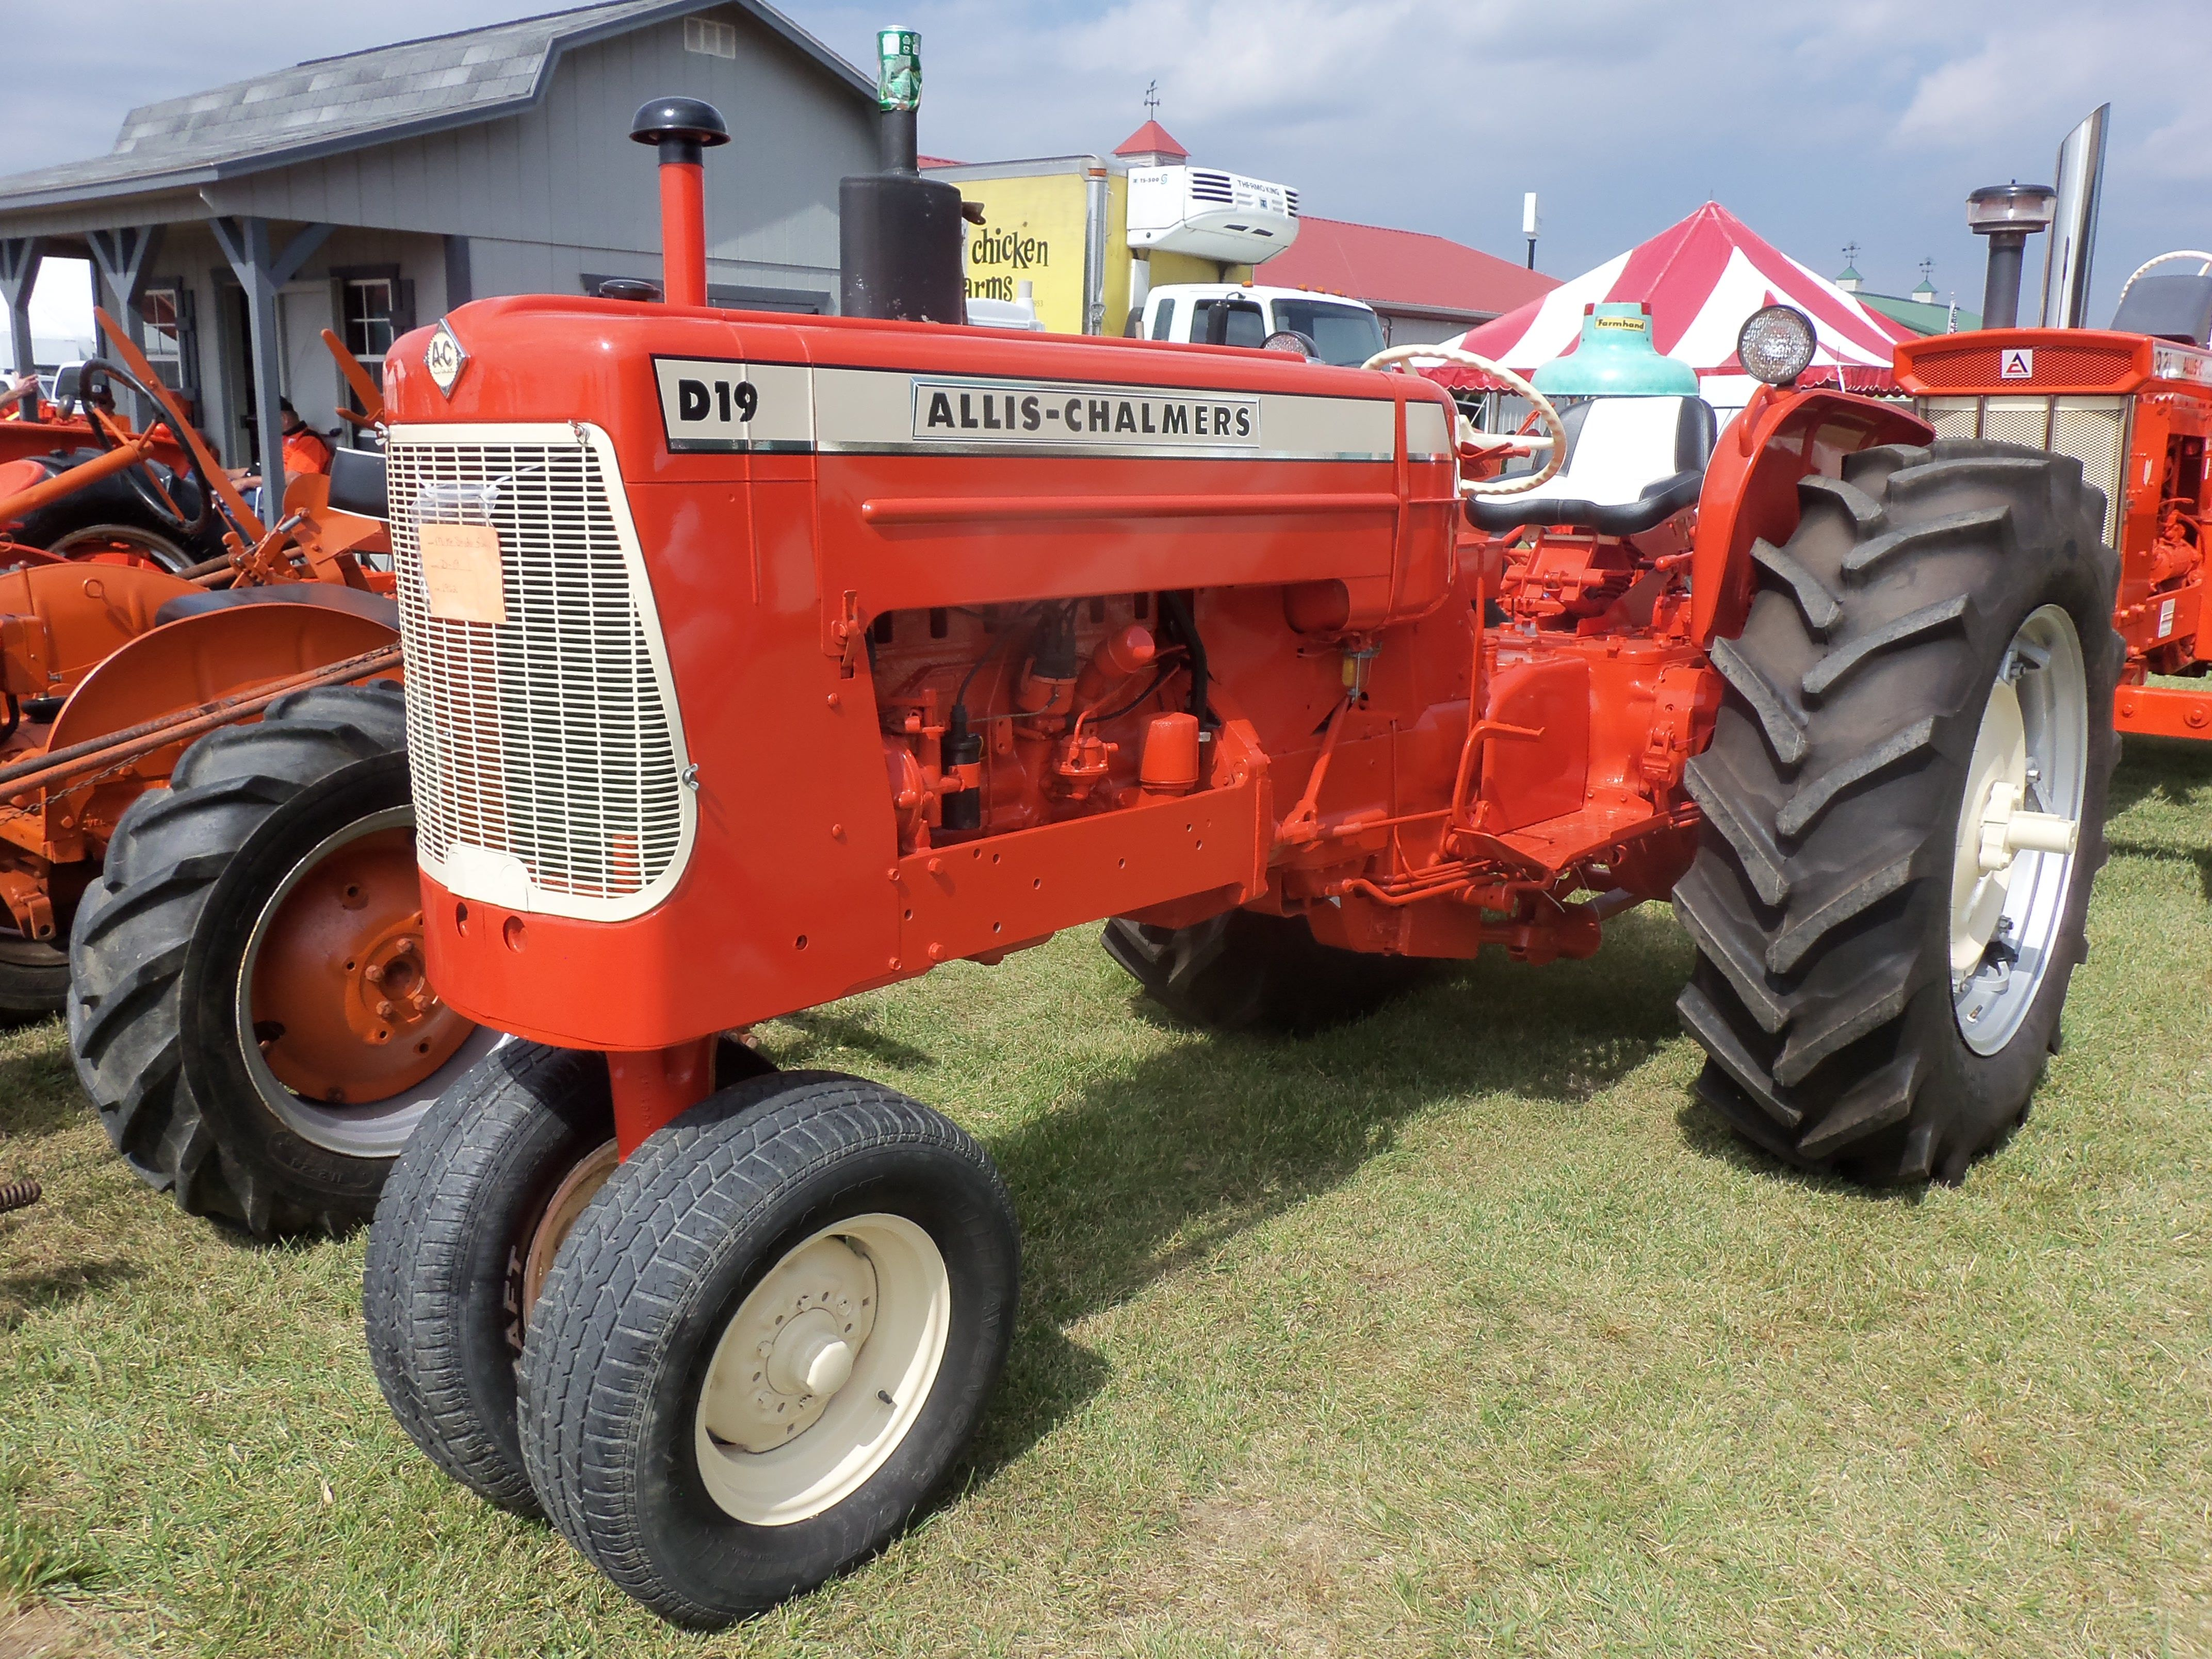 1962 Allis CHalmers D19 tricycle 66hp Love seeing these tricycle